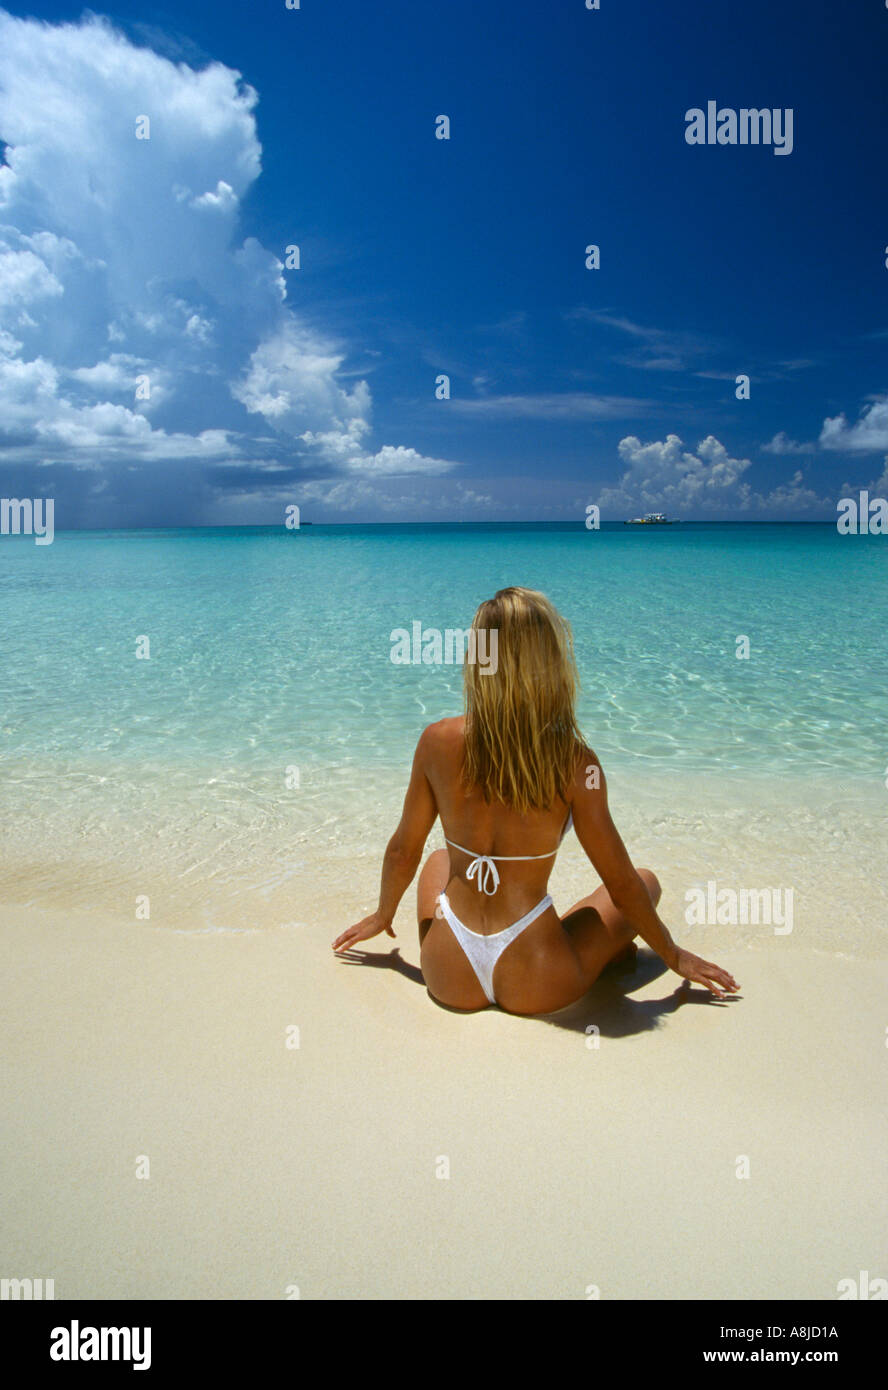 Cayman Islands Grand Cayman woman in thong sitting on